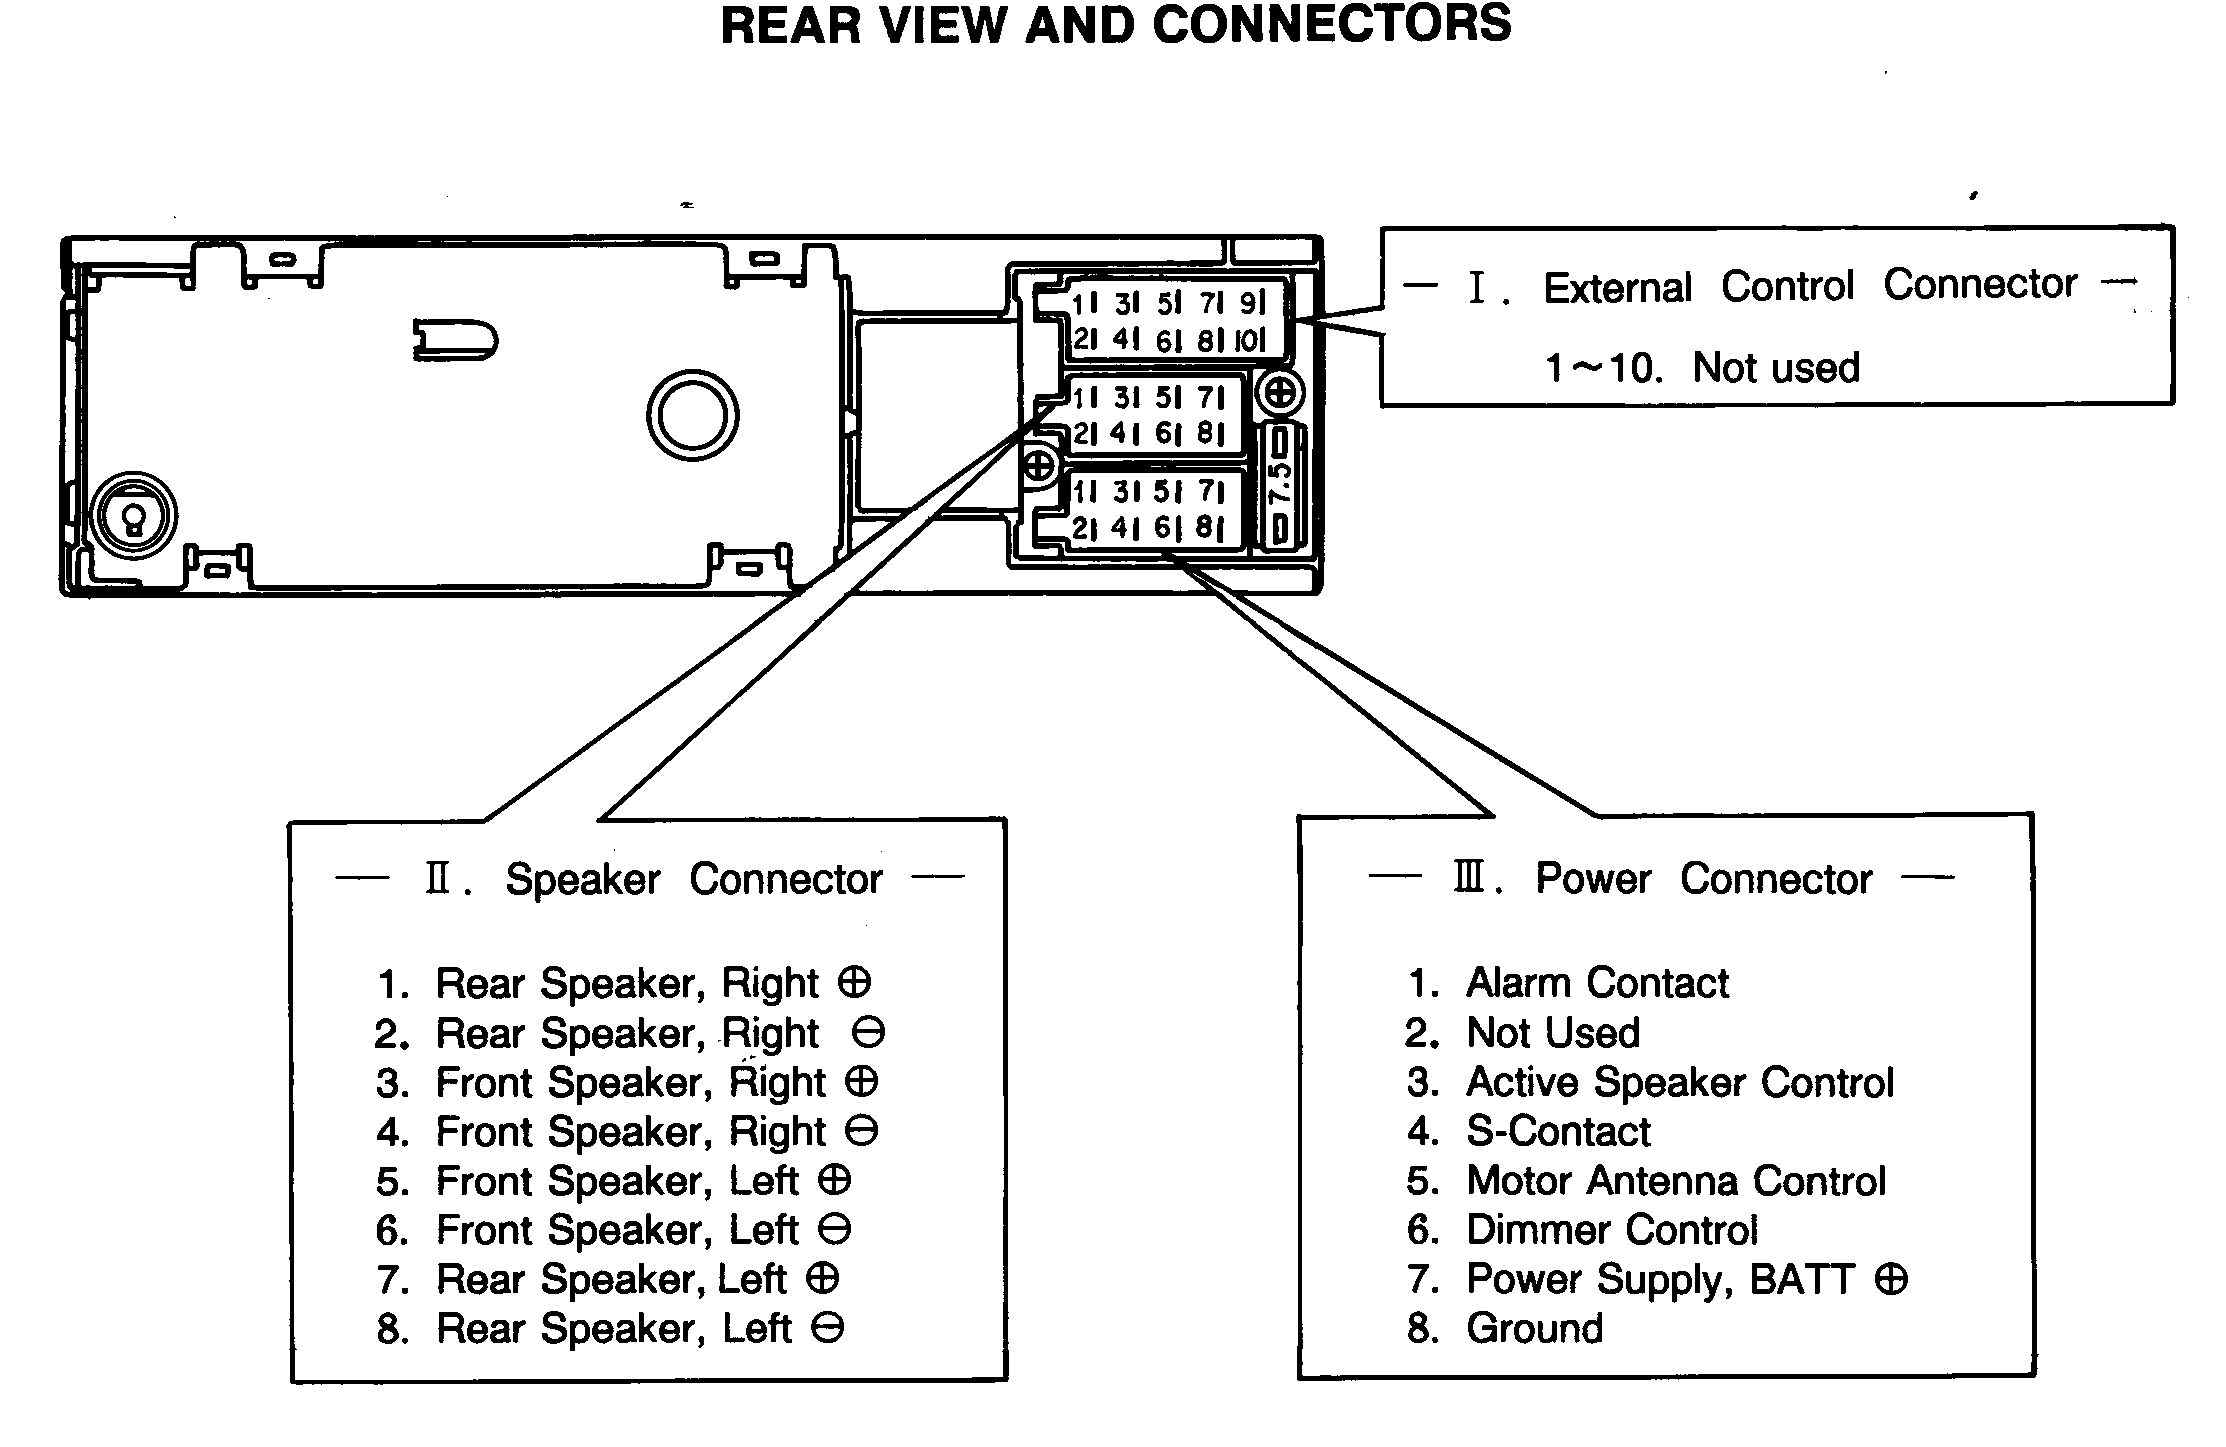 WireHarnessVW121401 car audio wiring diagram electrical wiring diagrams \u2022 free wiring 2008 hyundai accent radio wiring diagram at bakdesigns.co